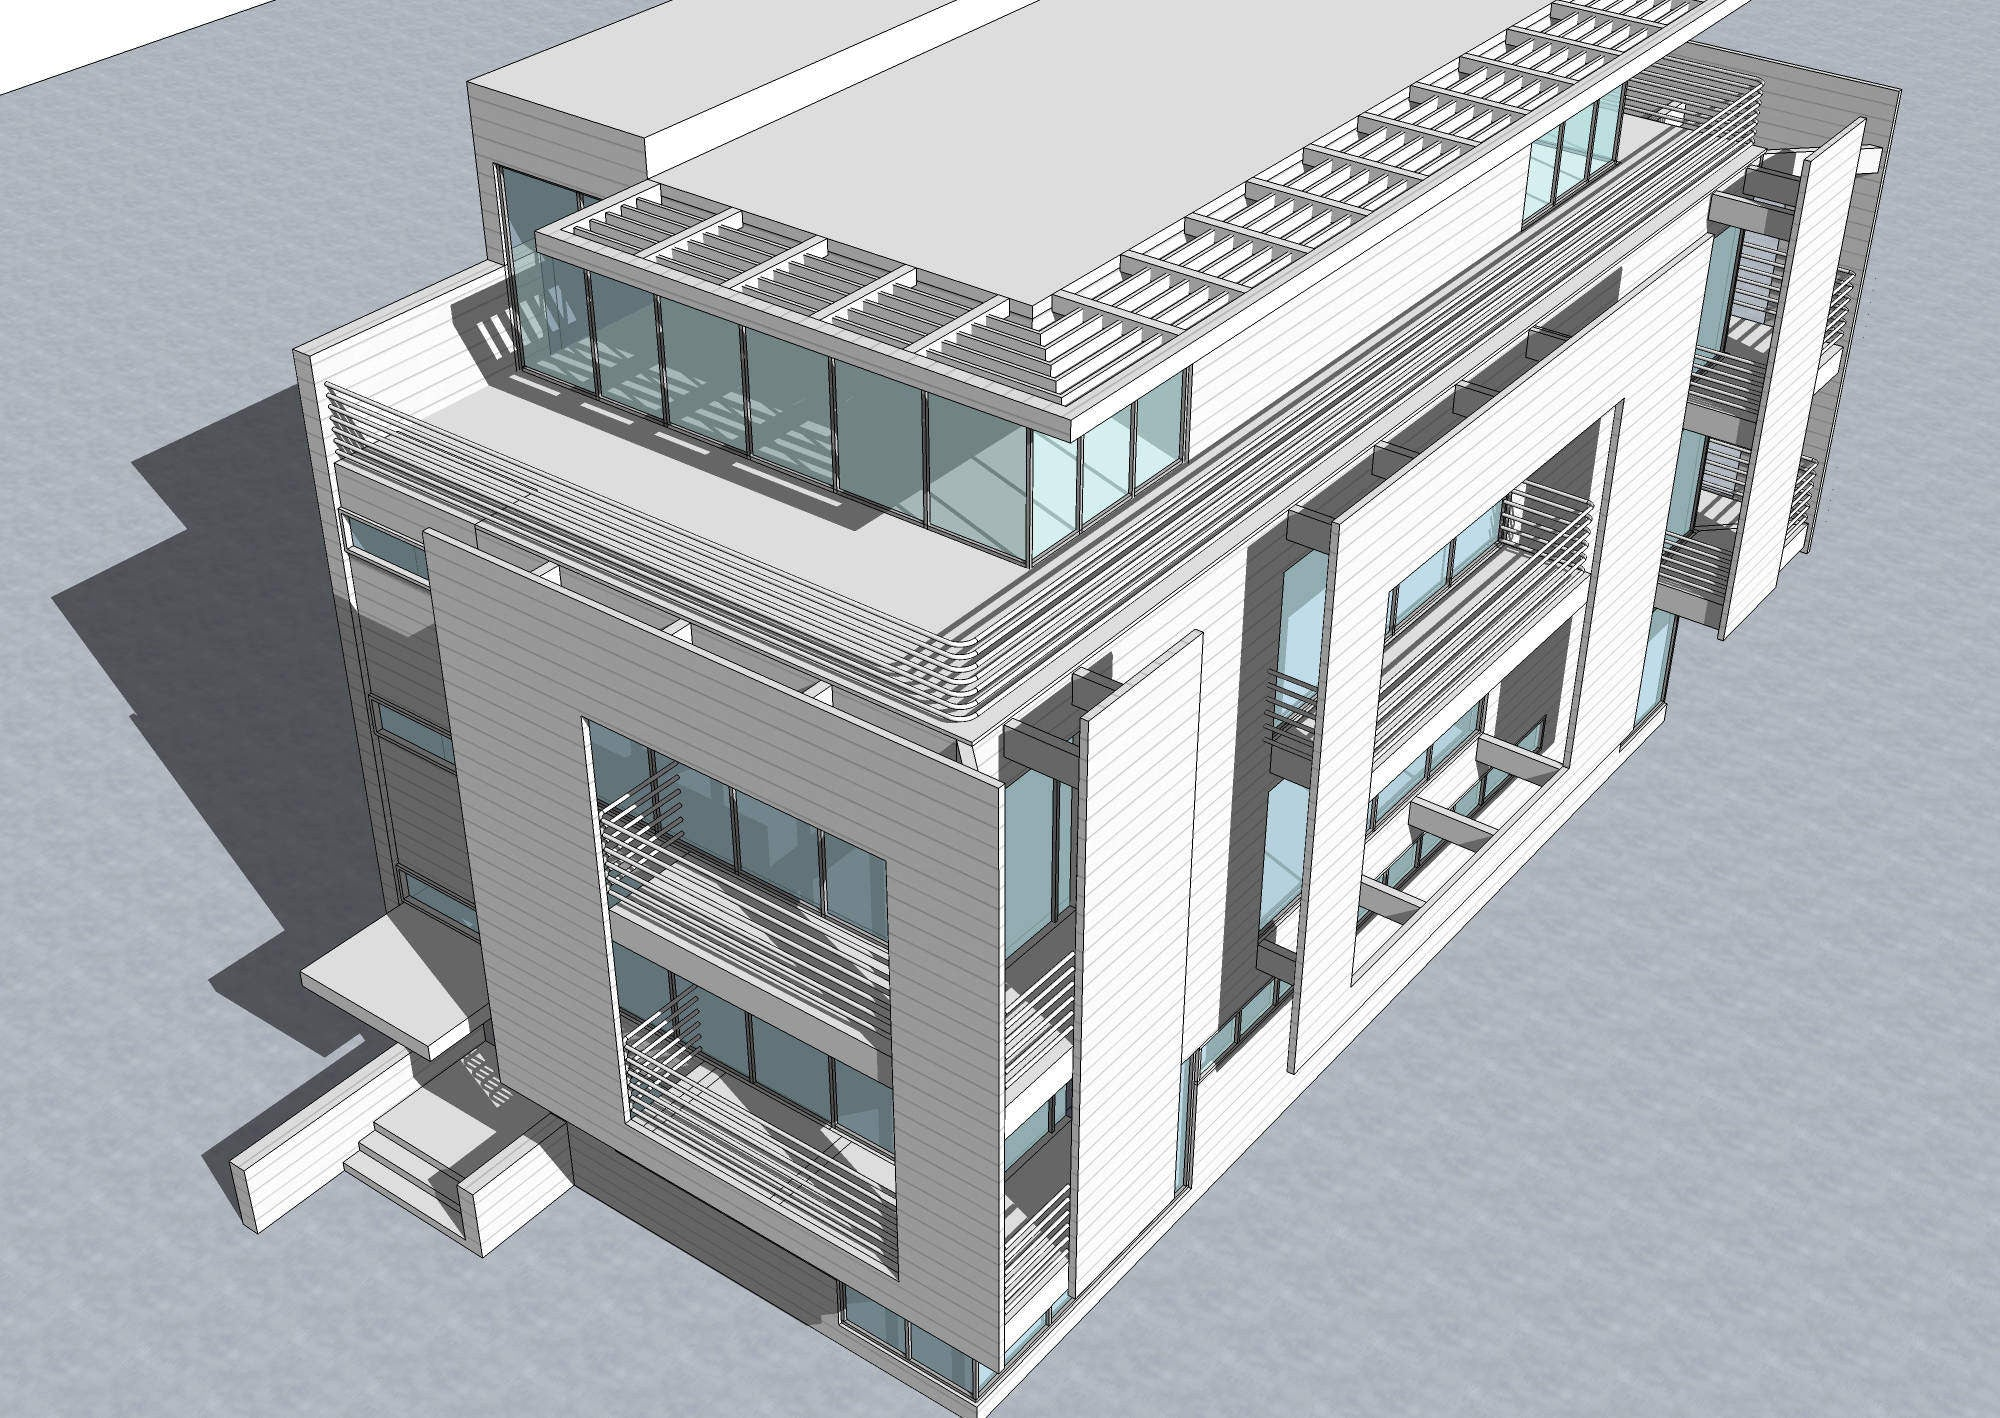 Sketchup 3d architecture models rickmers house richard for House cad drawings